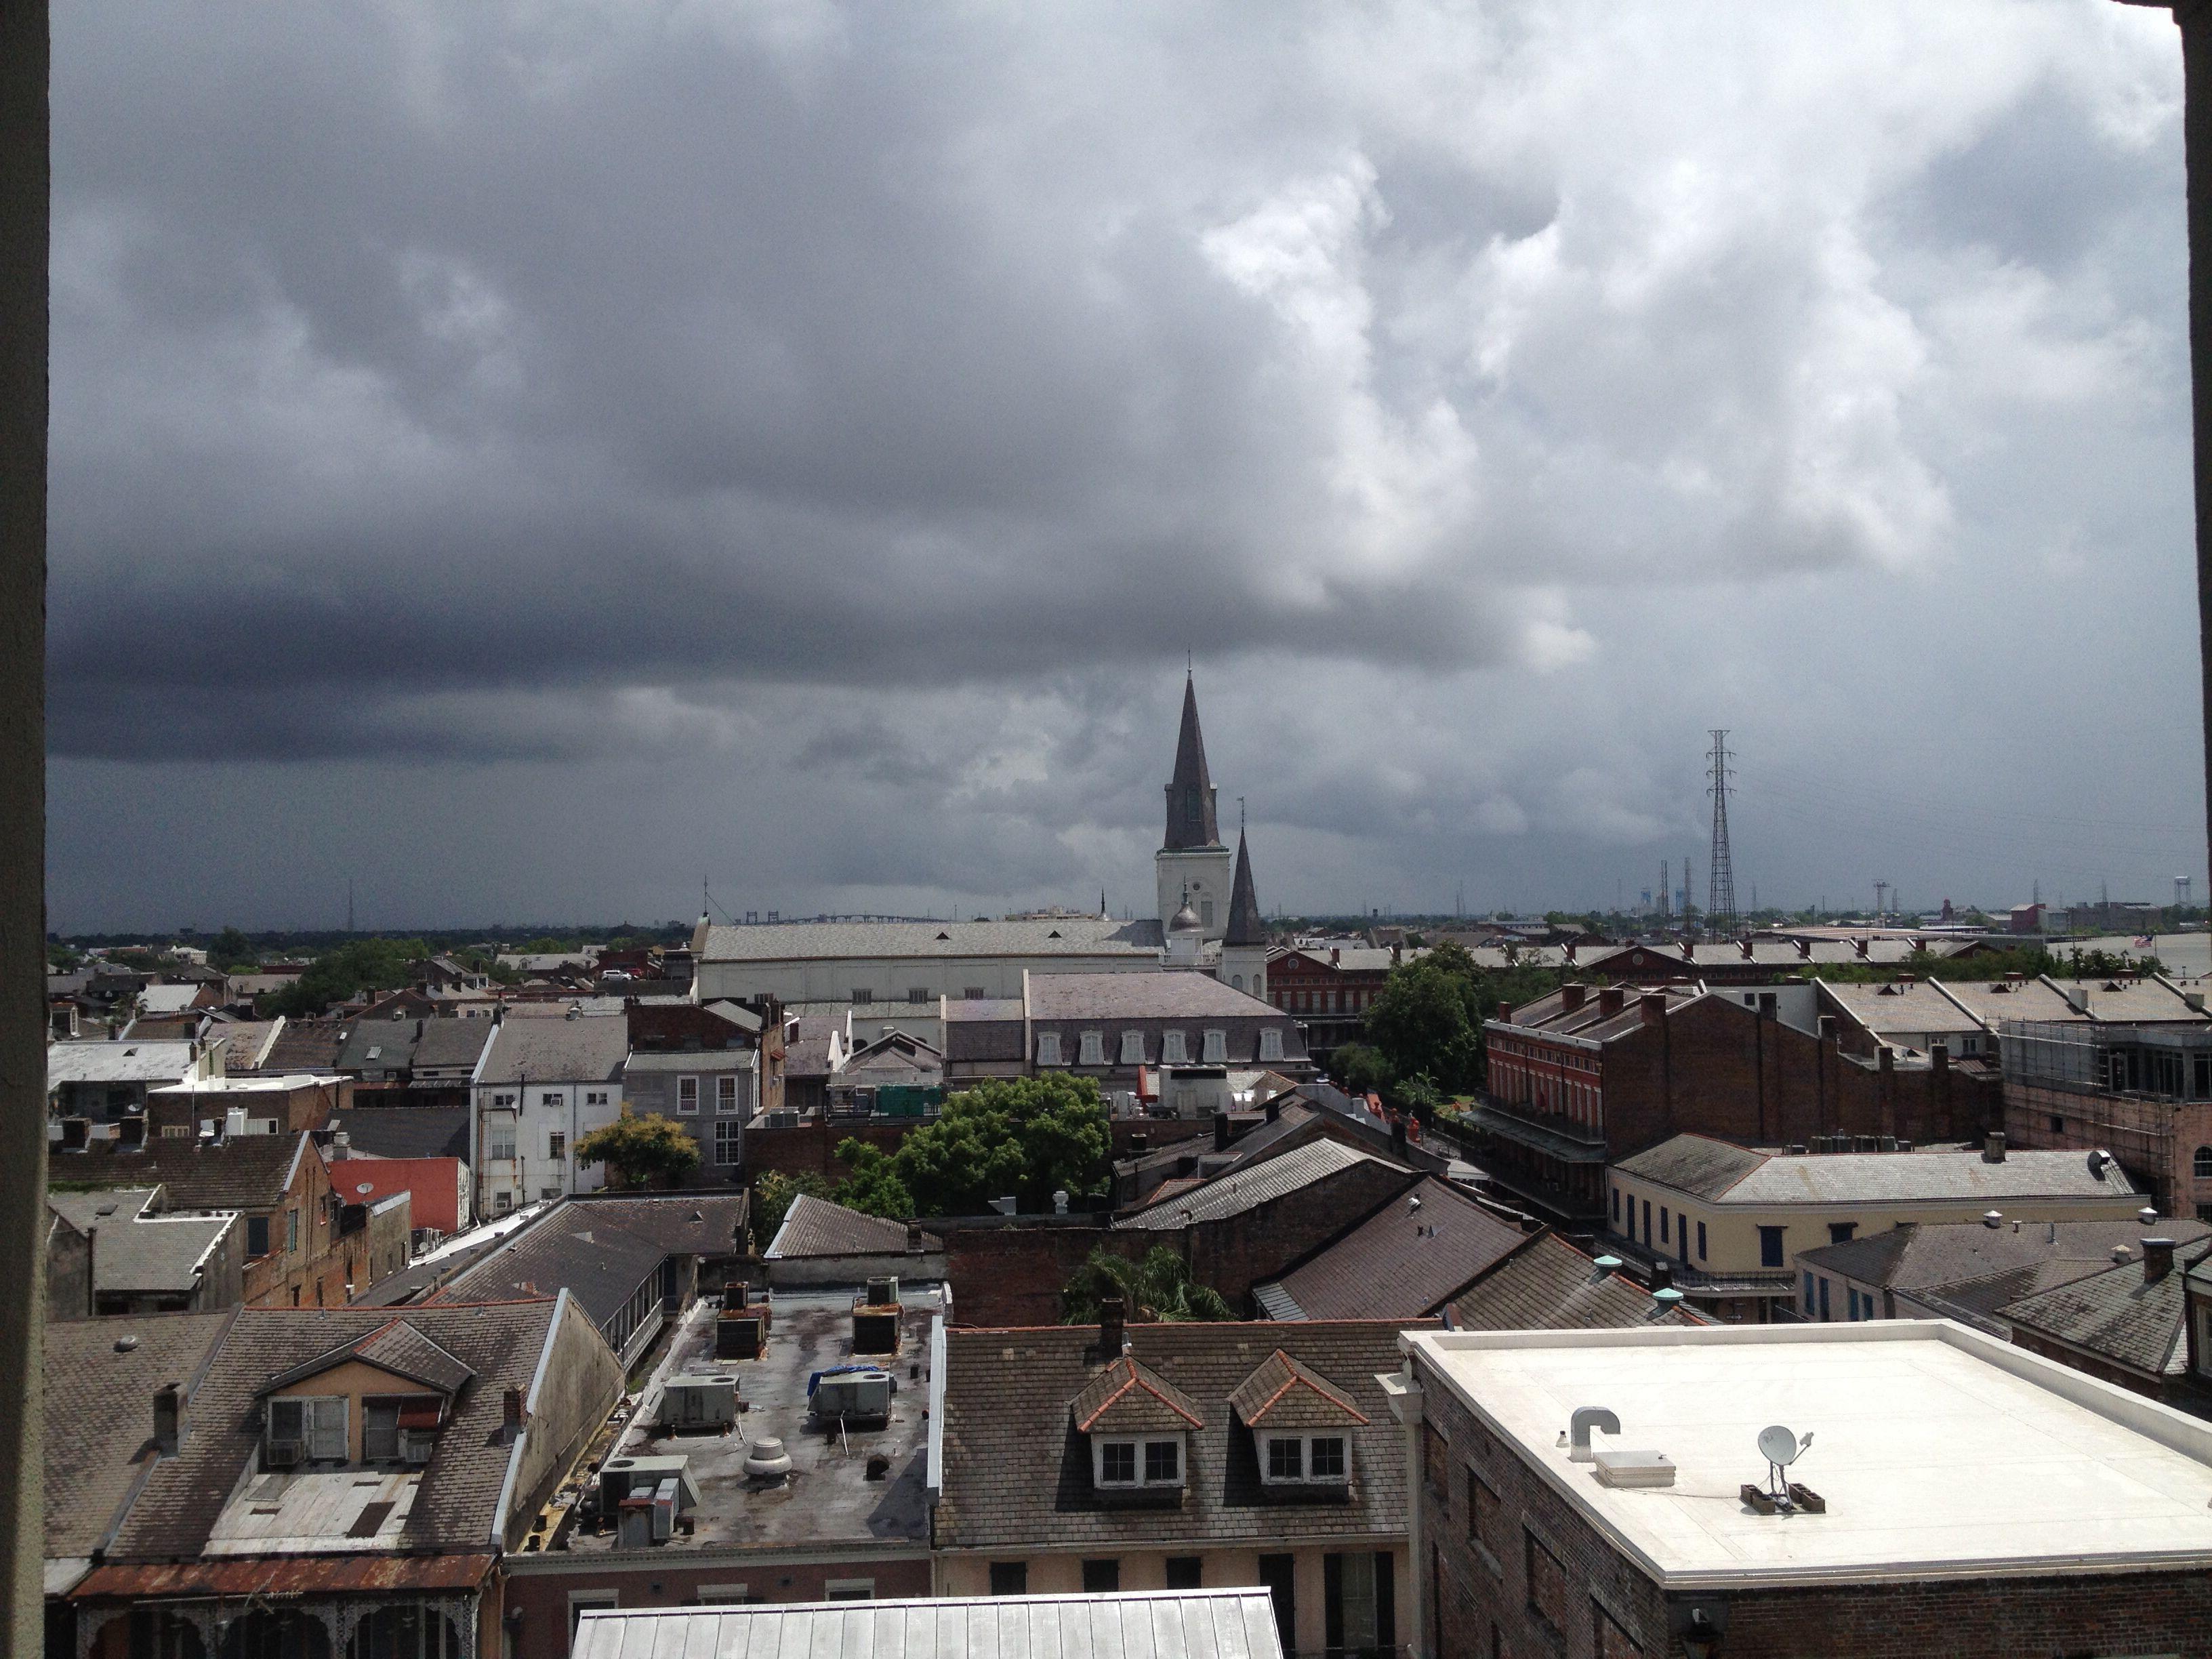 The view from the observation deck at the Omni Royal Orleans Hotel in NOLA's French Quarter.